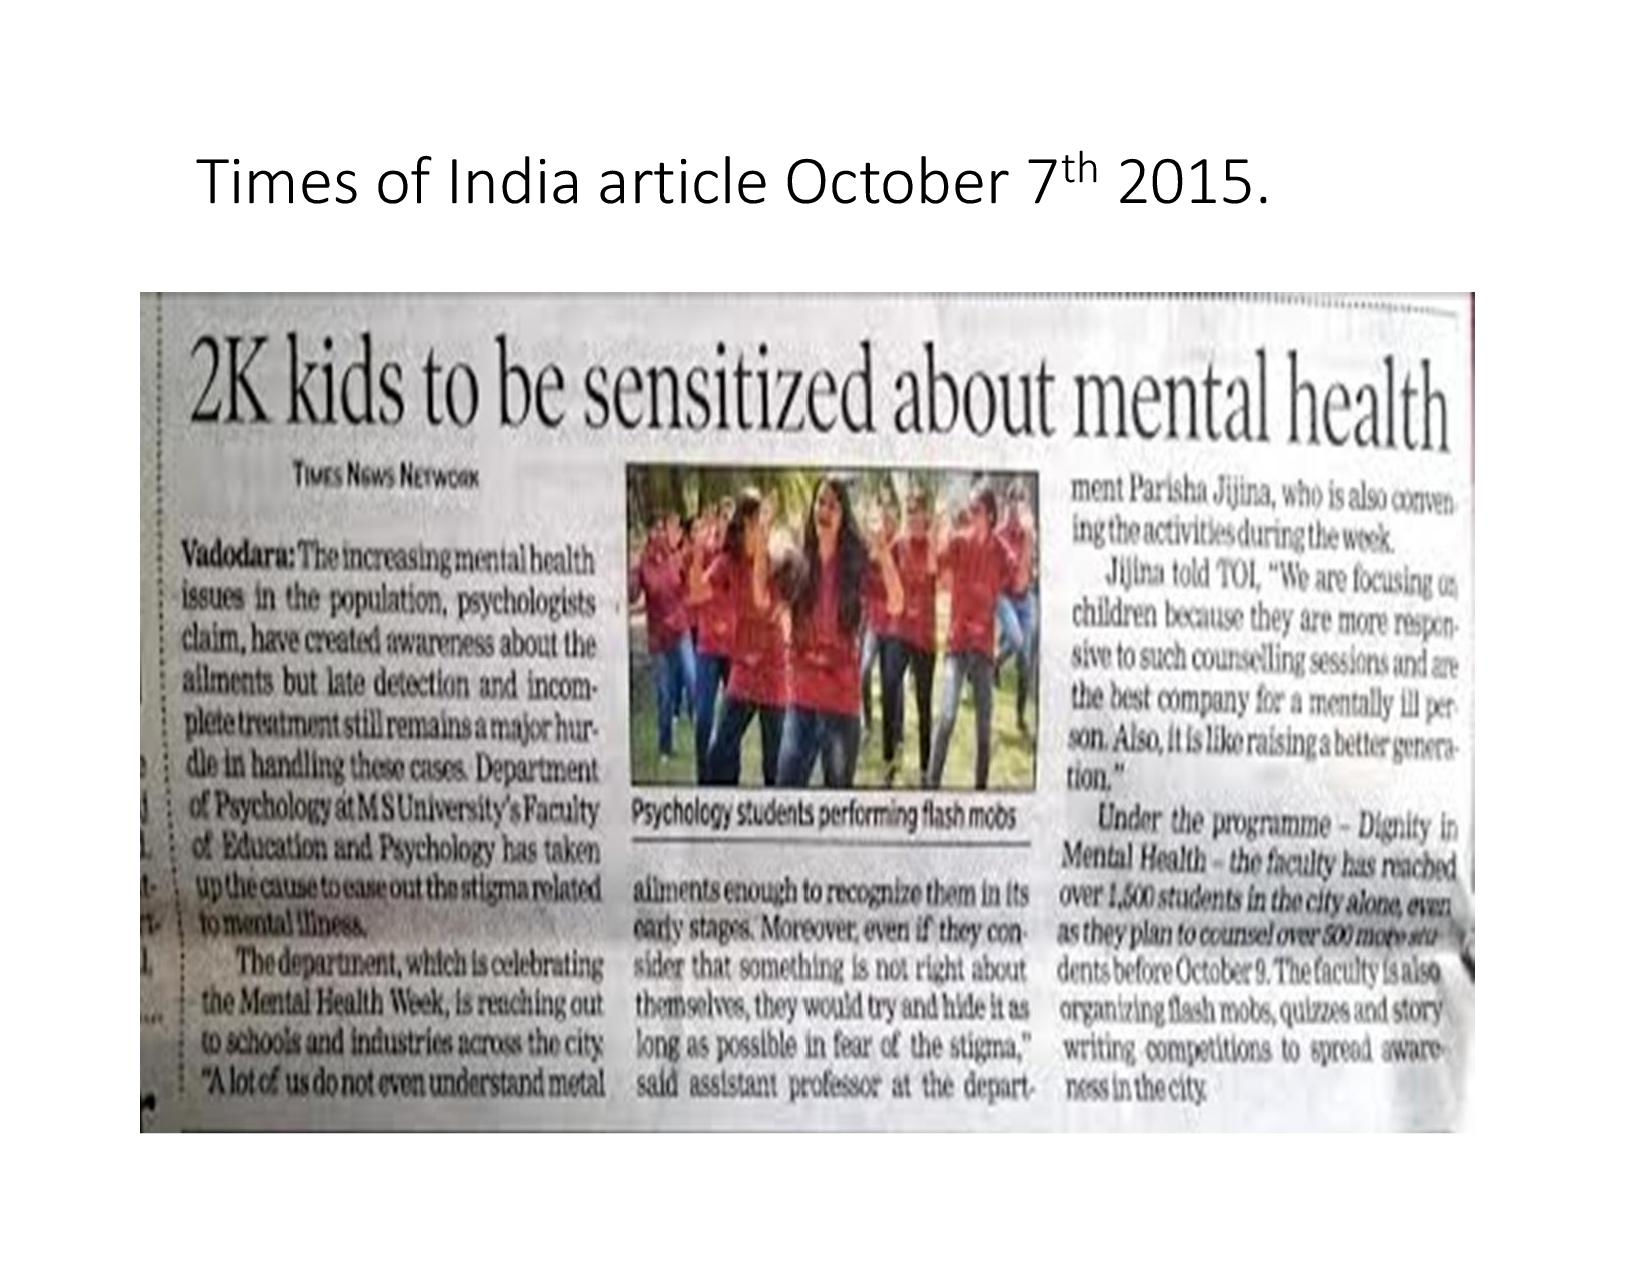 mental health day 2015, M.S. University of baroda-page-008